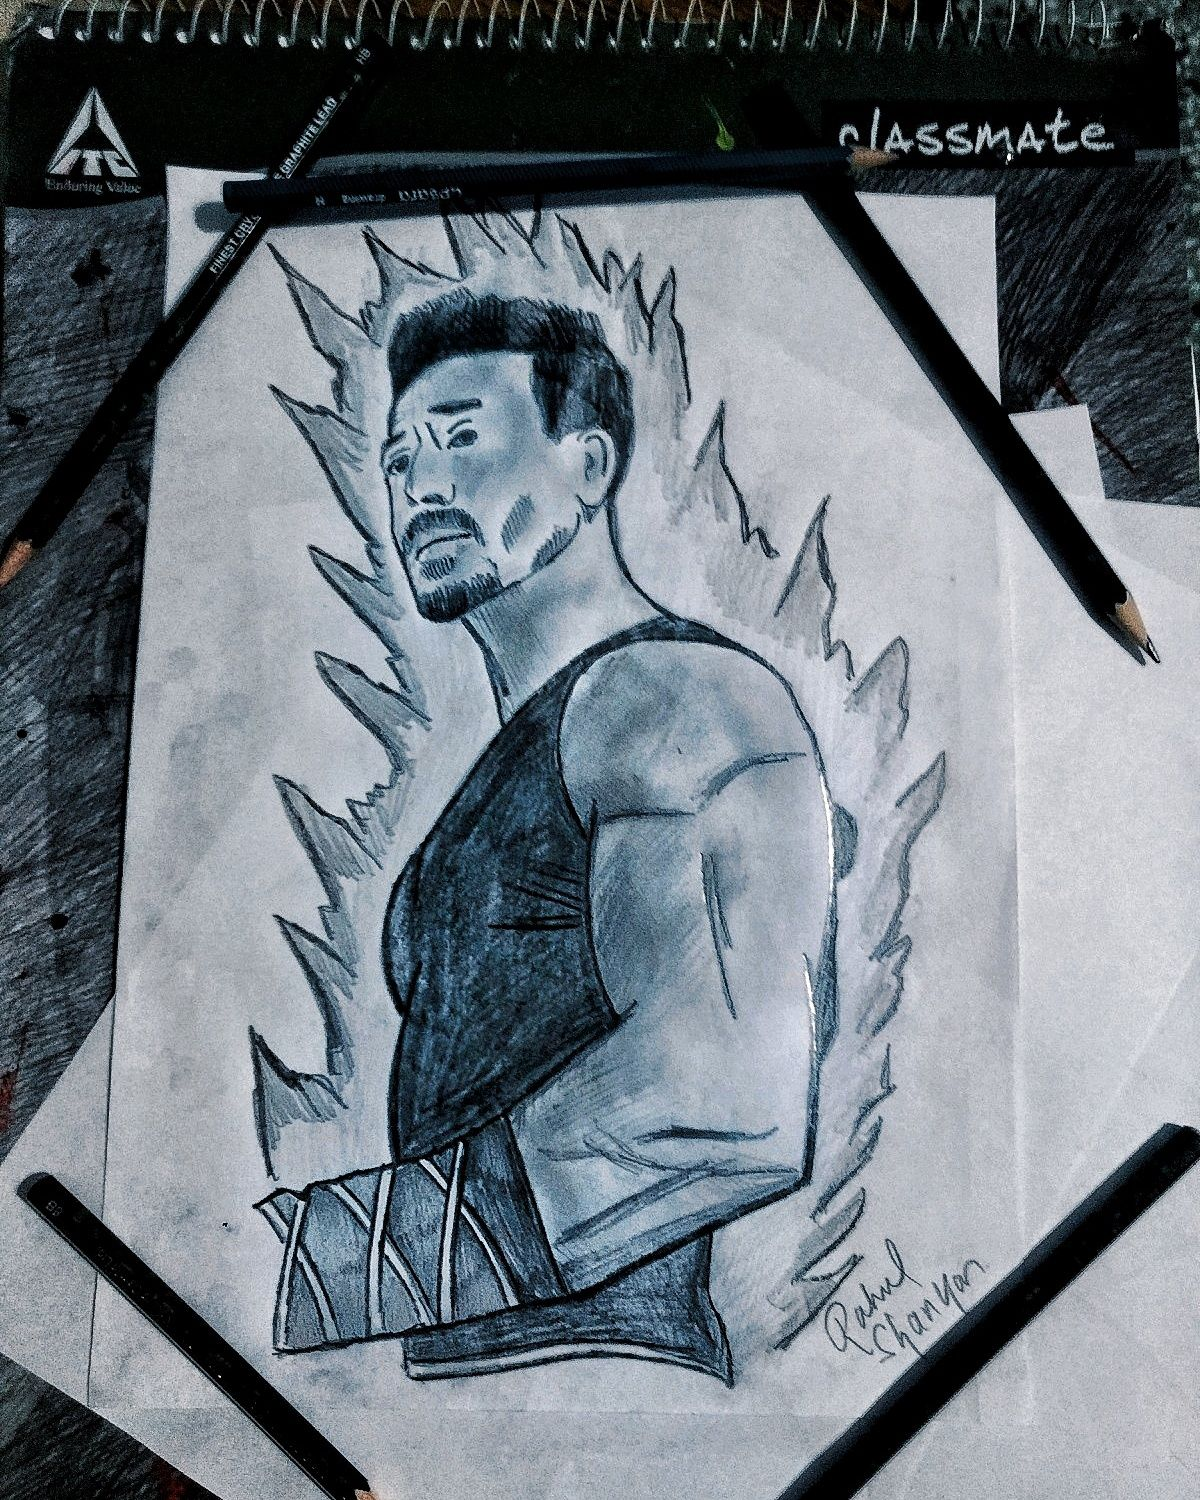 A Sketch Of The Famous Indian Bollywood Actor Tiger Shroff